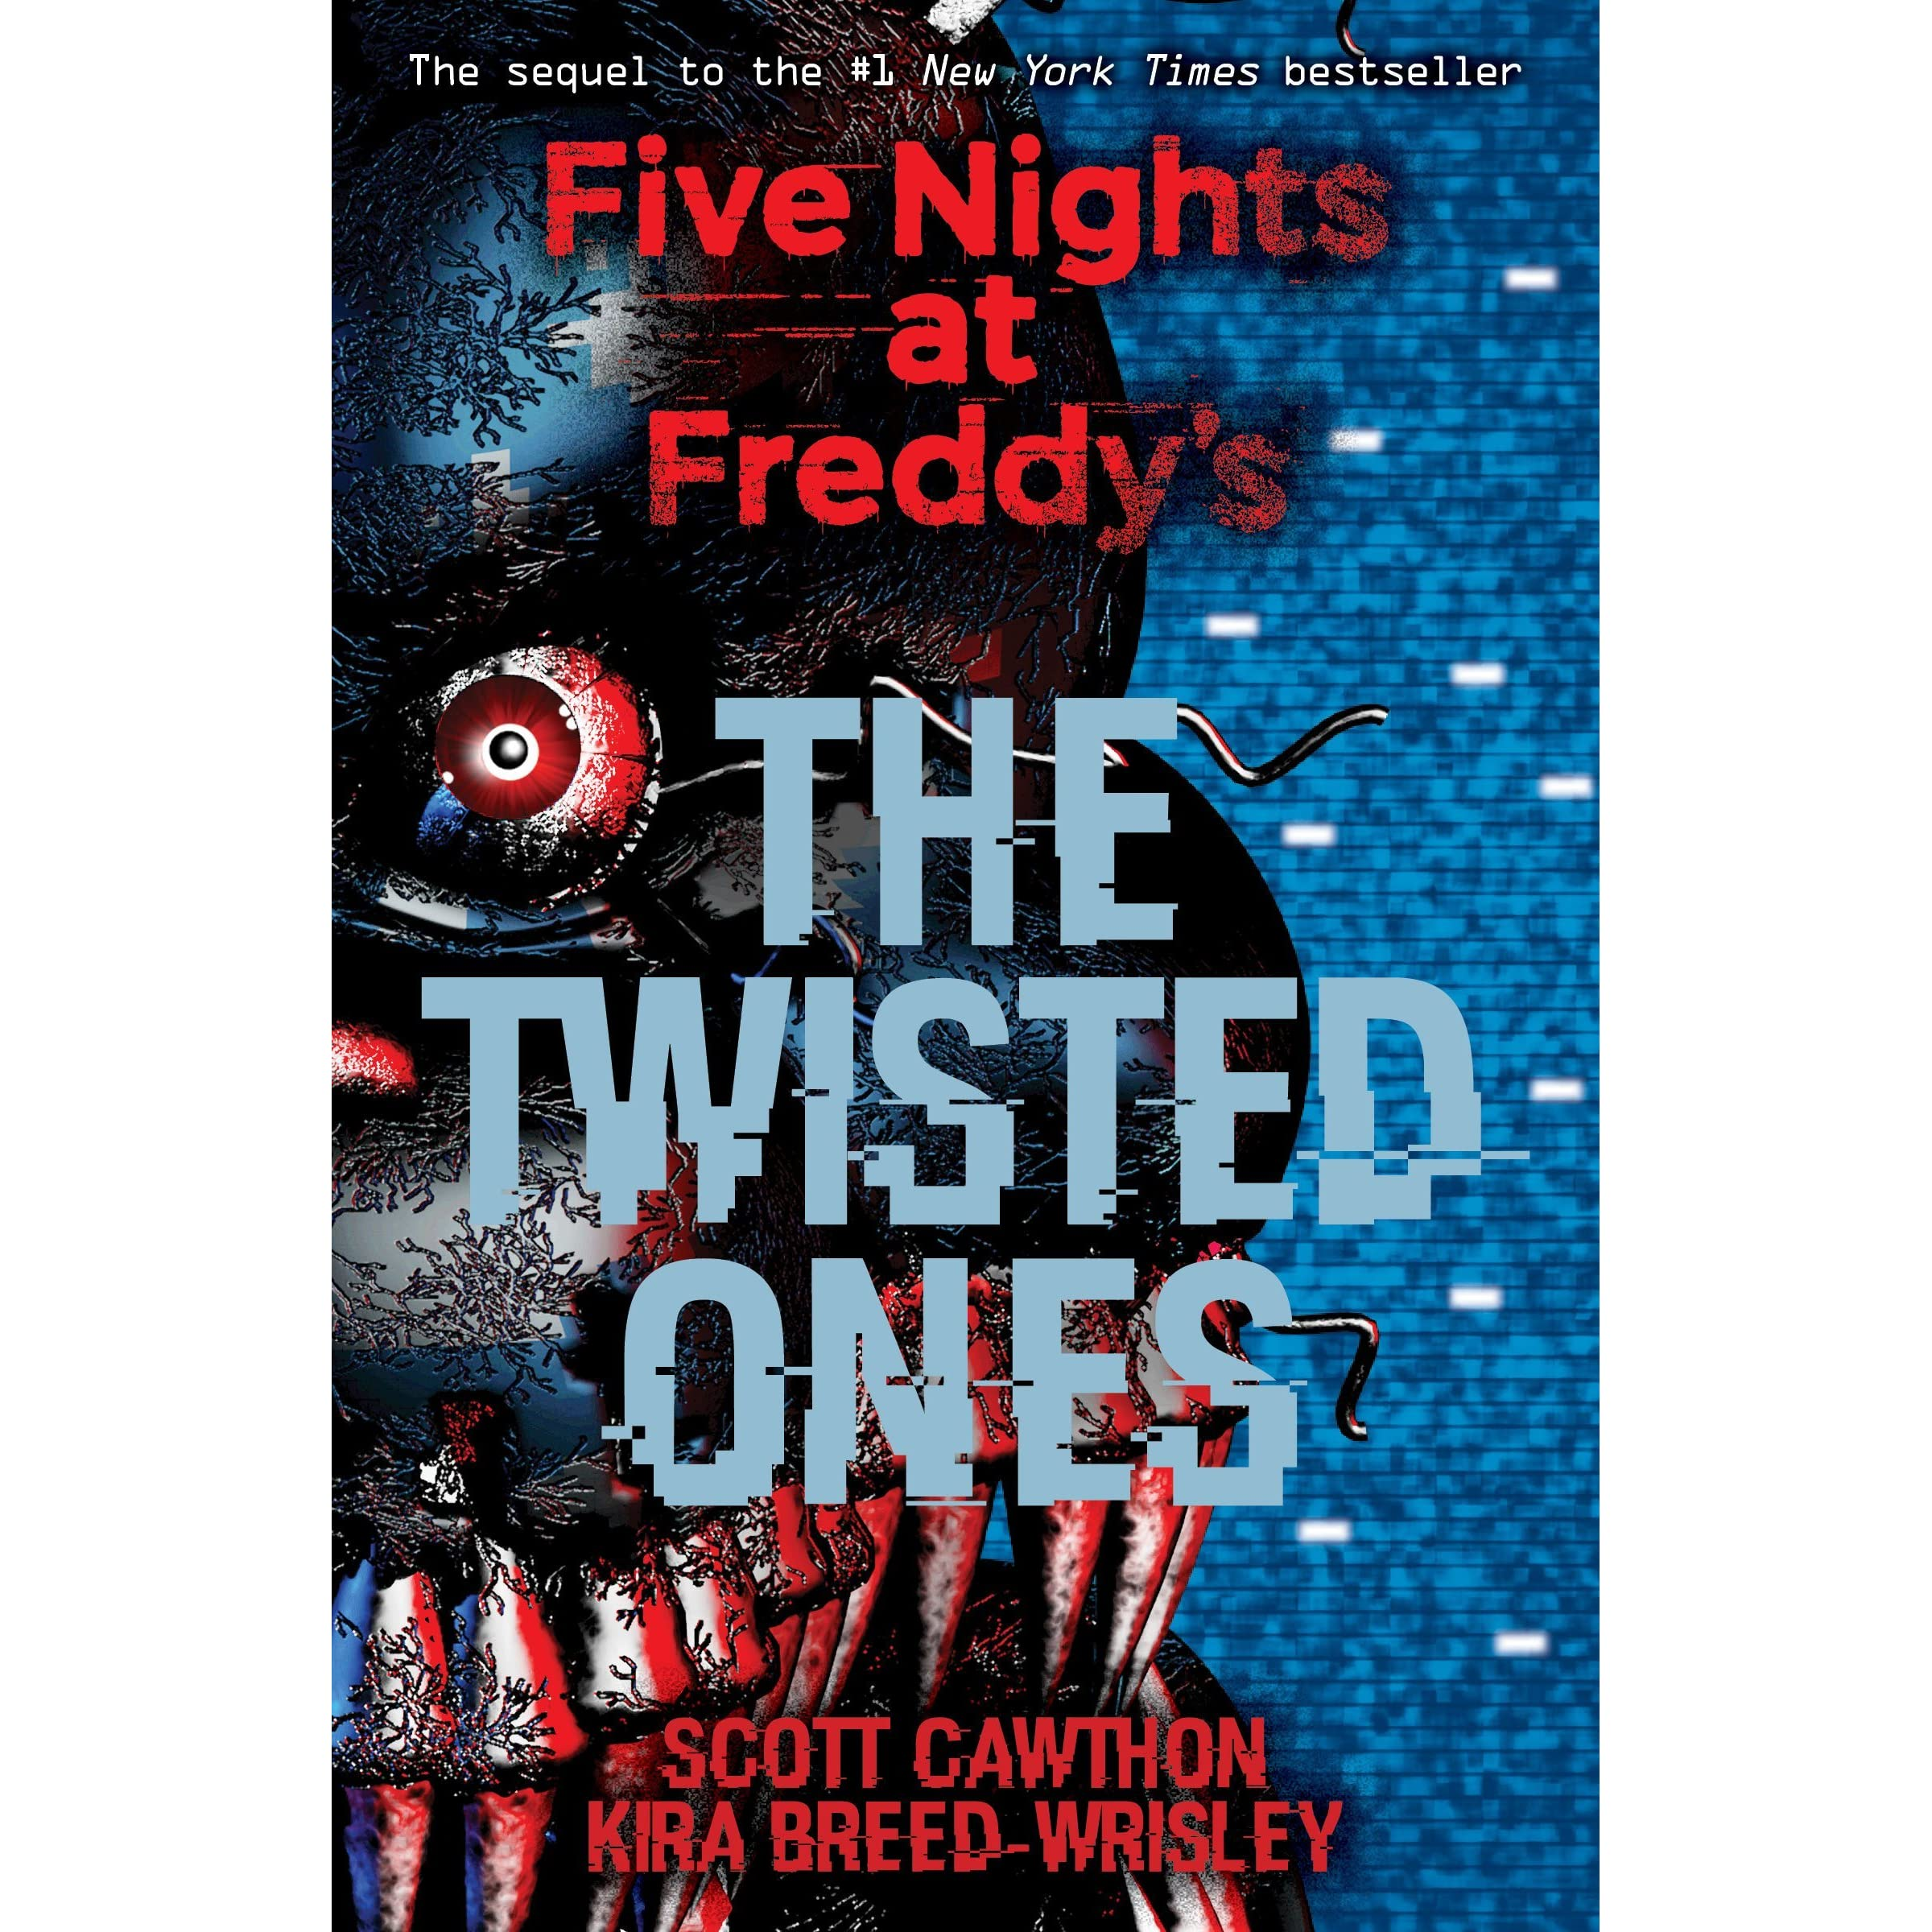 The Twisted Ones (Five Nights at Freddy's, #2) by Scott Cawthon